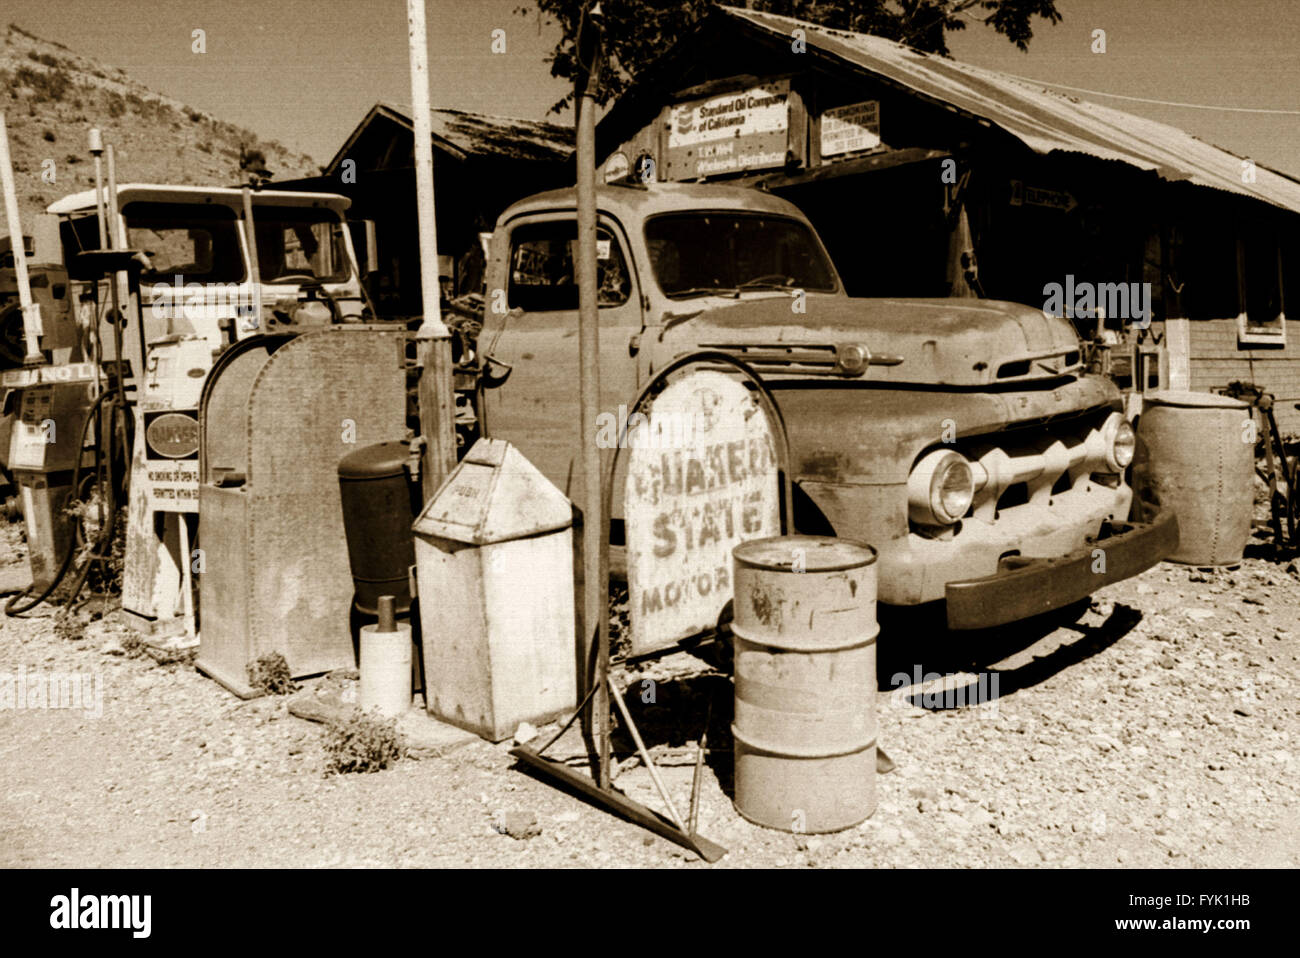 Early 1950s Ford F100 Pickup Truck Leading The Line At Gas Pumps An Old South West Usa Mining Towns General Store